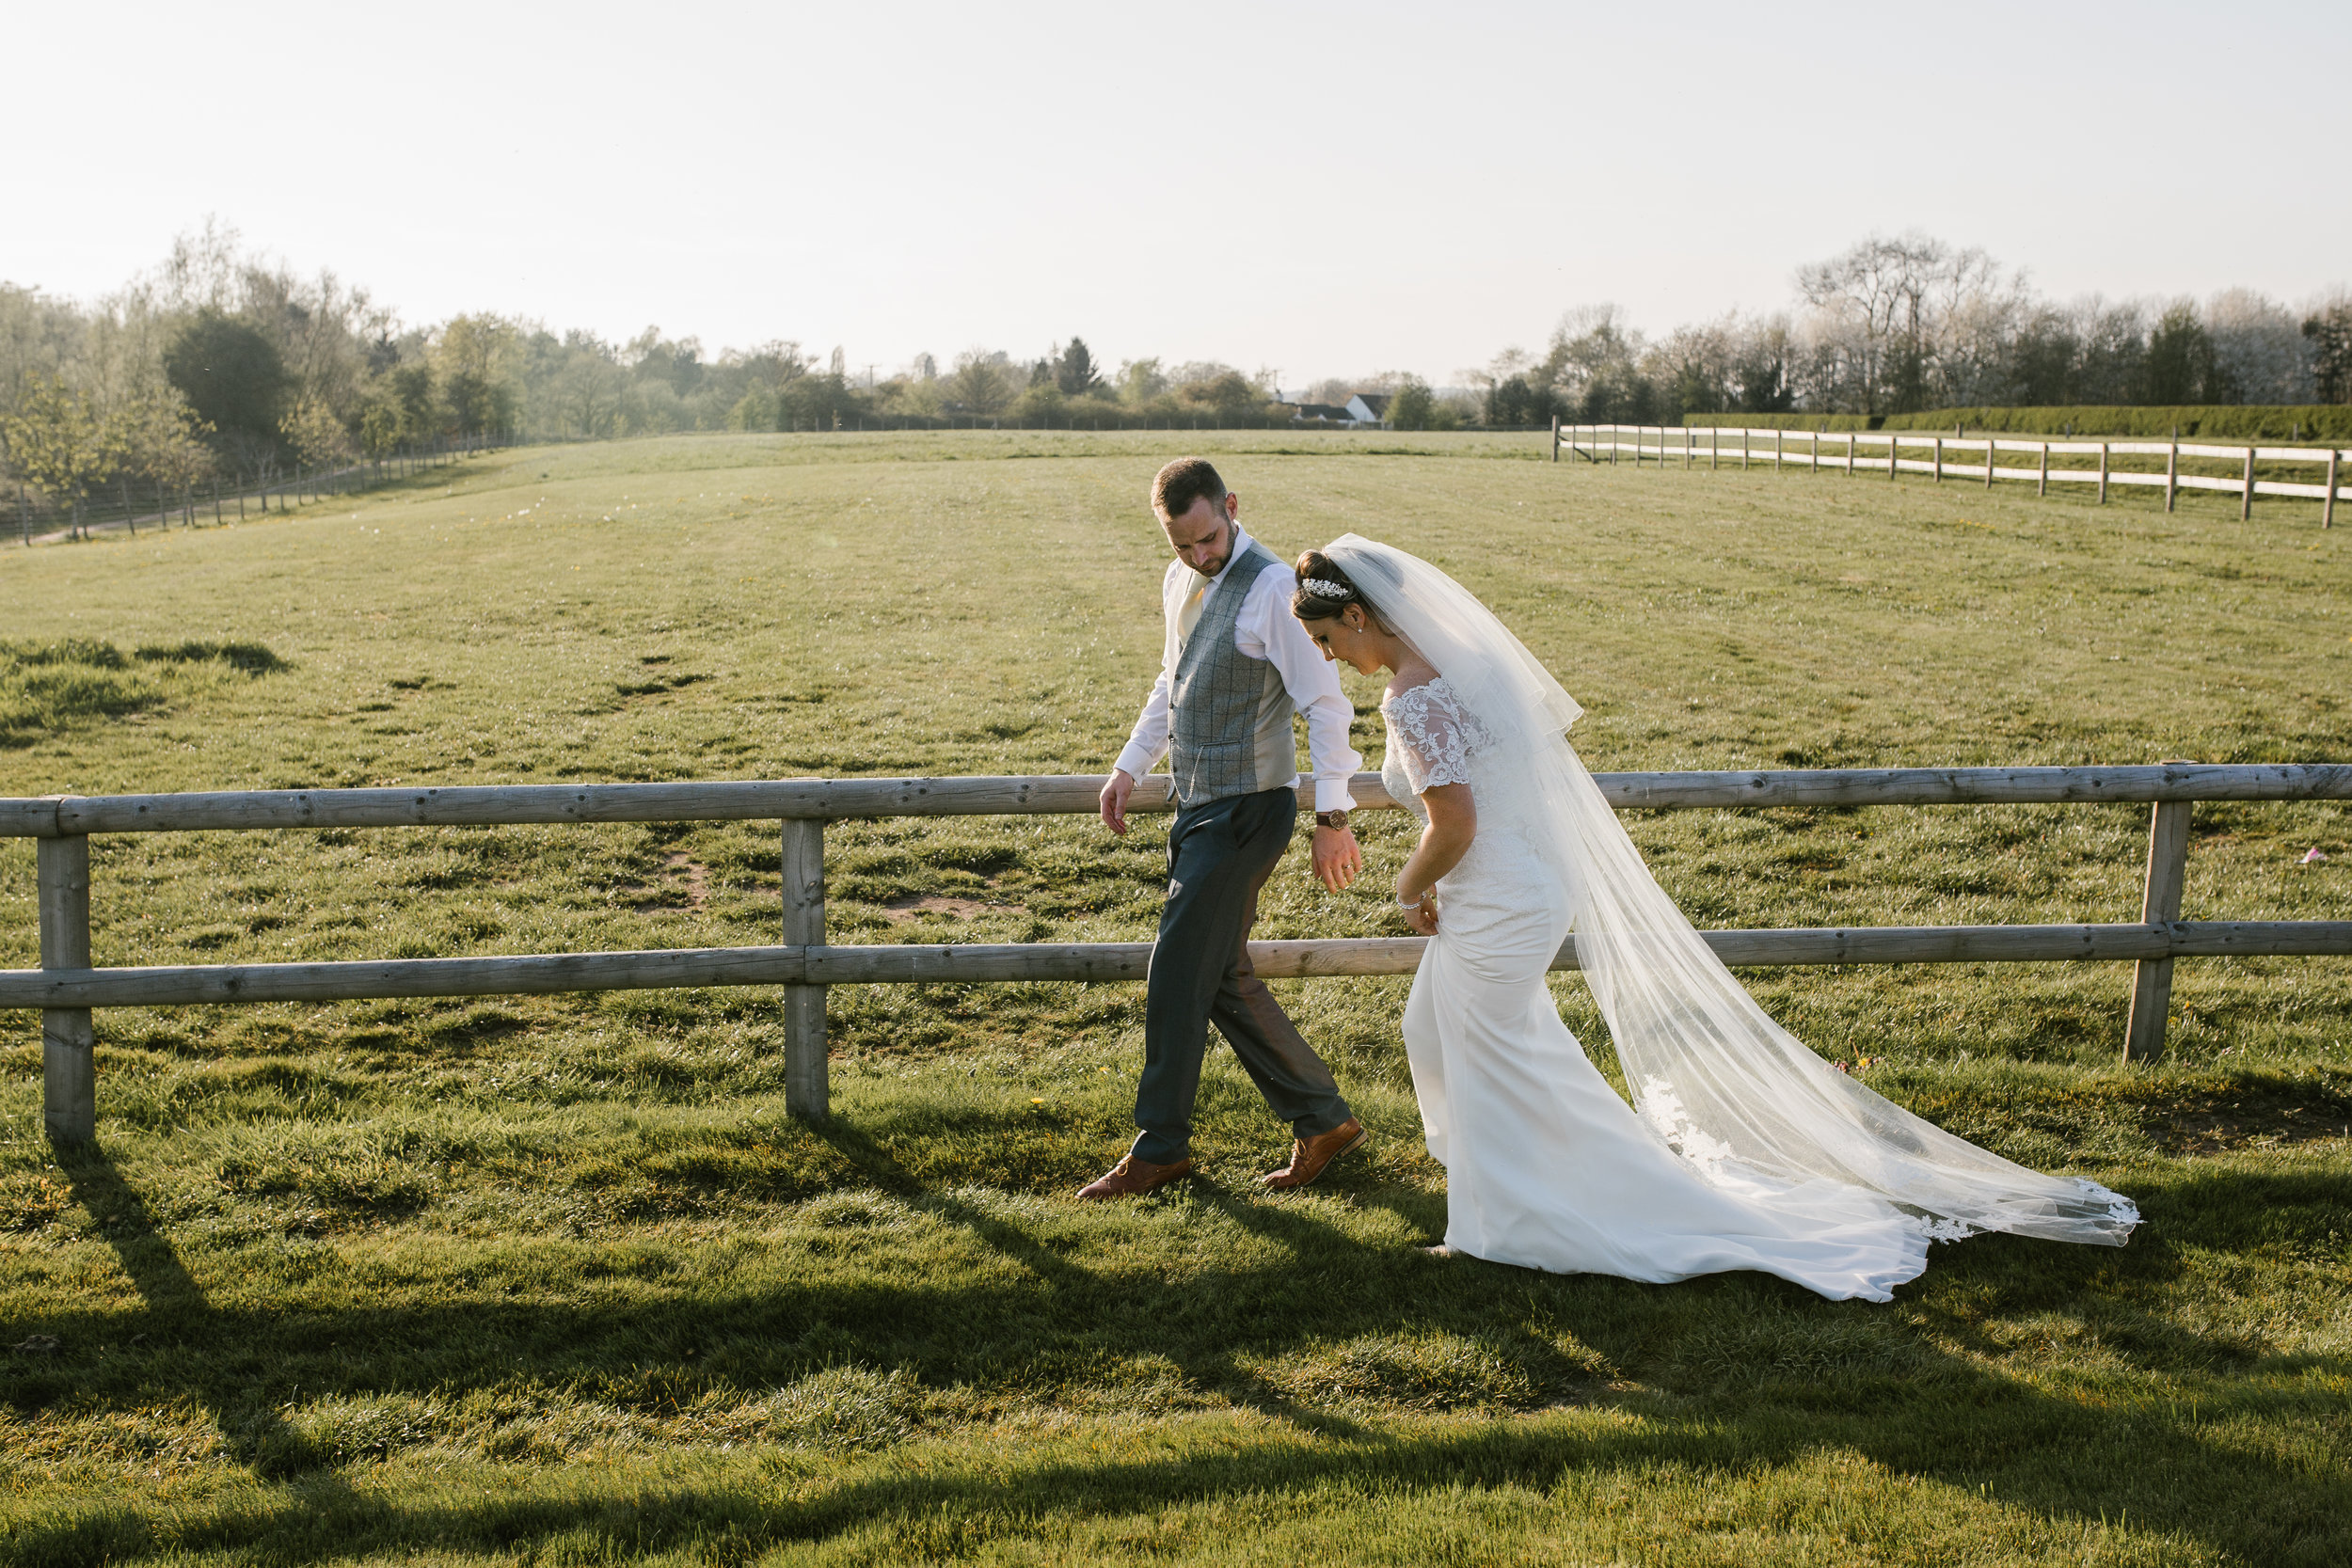 bride and groom strolling through a field together at golden hour